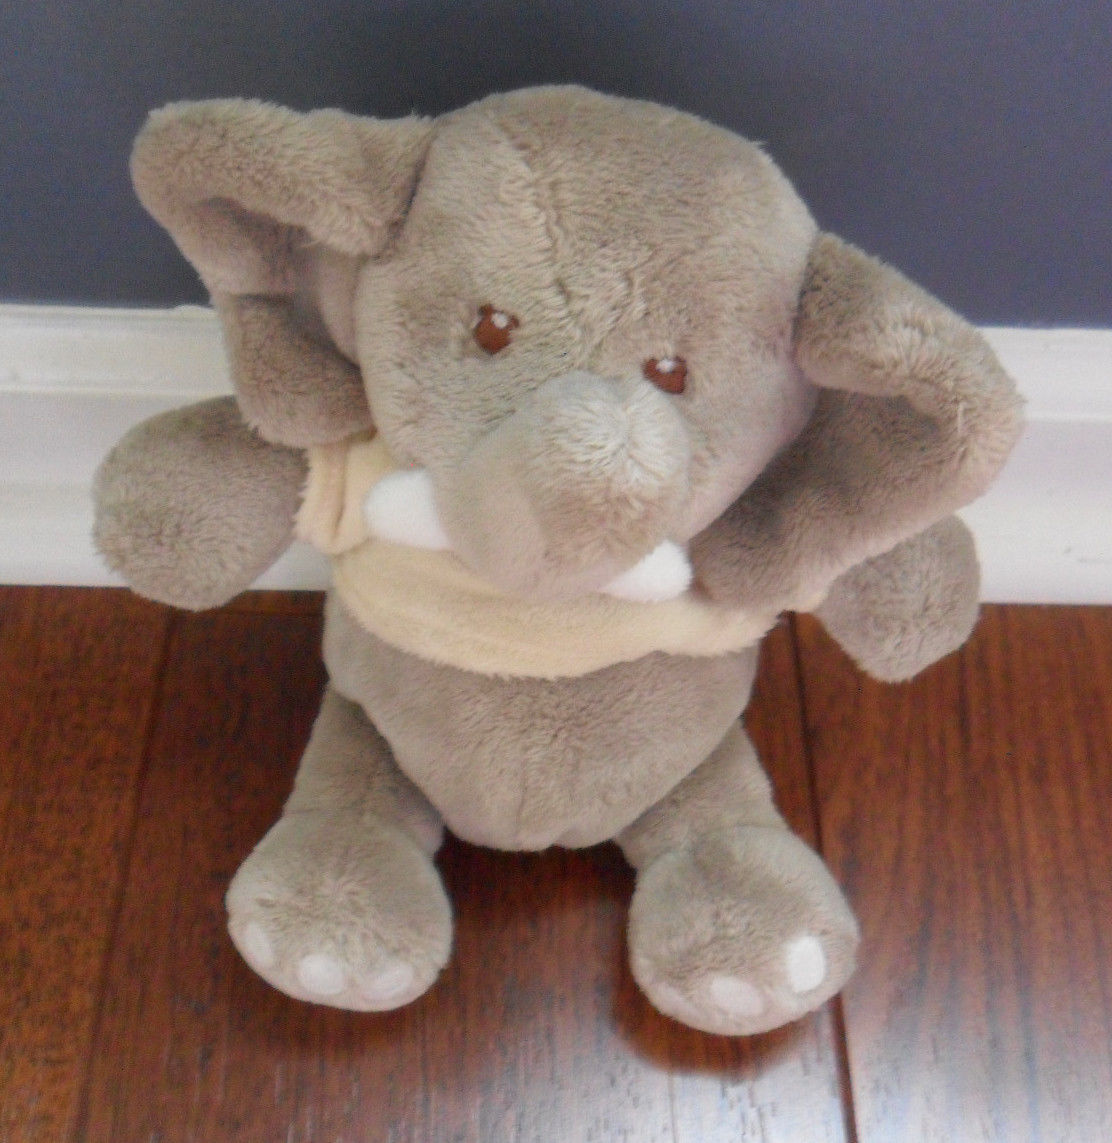 Primary image for Baby Ganz Elephant Gray Plush Rattle Stuffed Animal Toy 9""